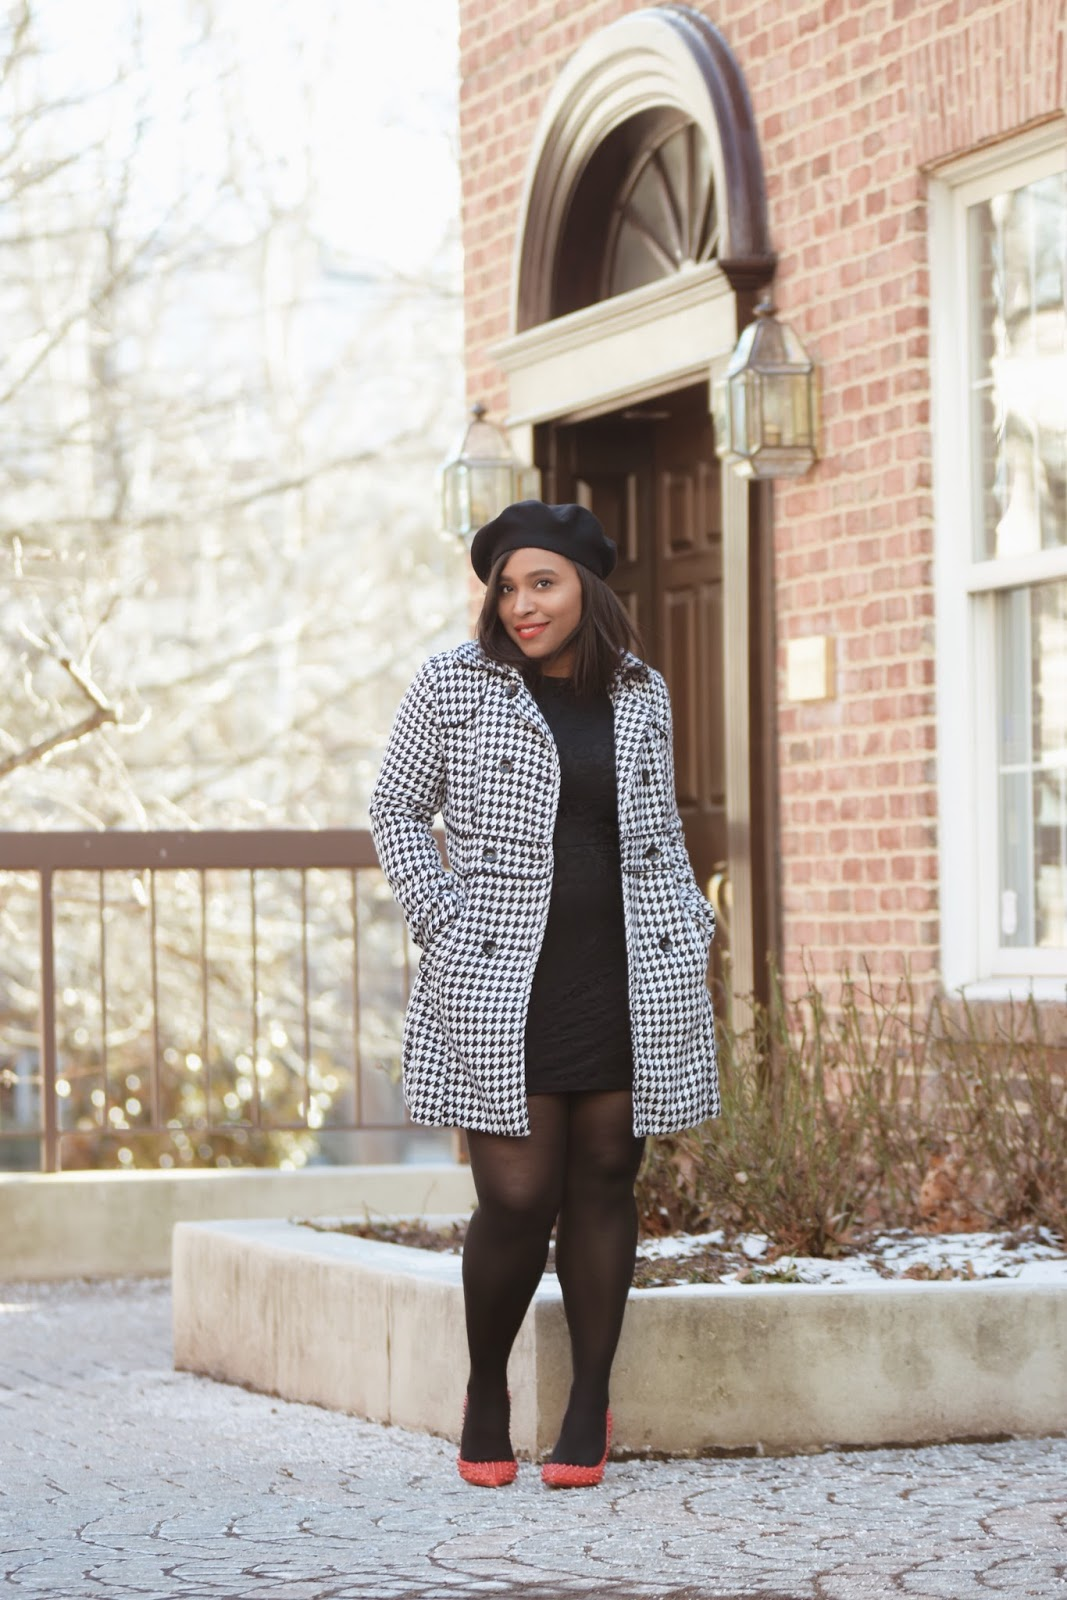 Shop Tobi, black lace dress, winter looks, valentines day looks, houndstooth coat, red pumps